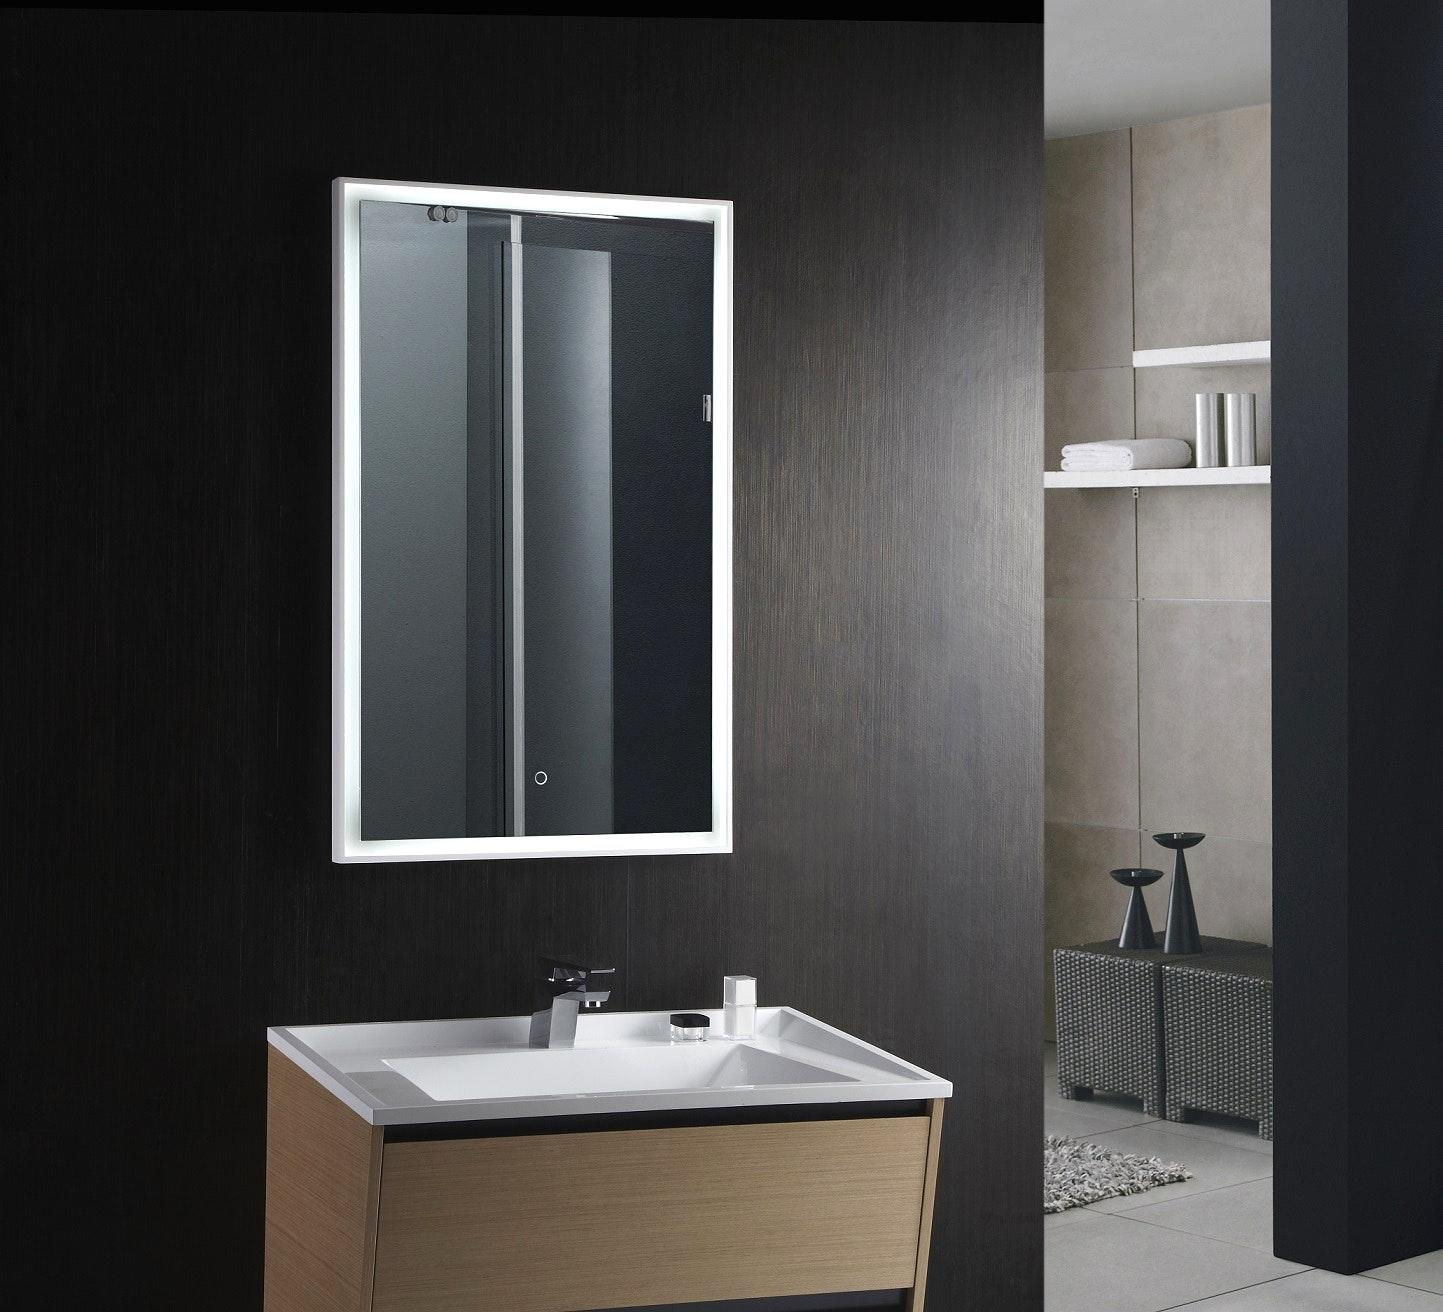 Led Lighted Mirrors Bathrooms | Lightings And Lamps Ideas For Led Lighted Mirrors (Image 14 of 20)